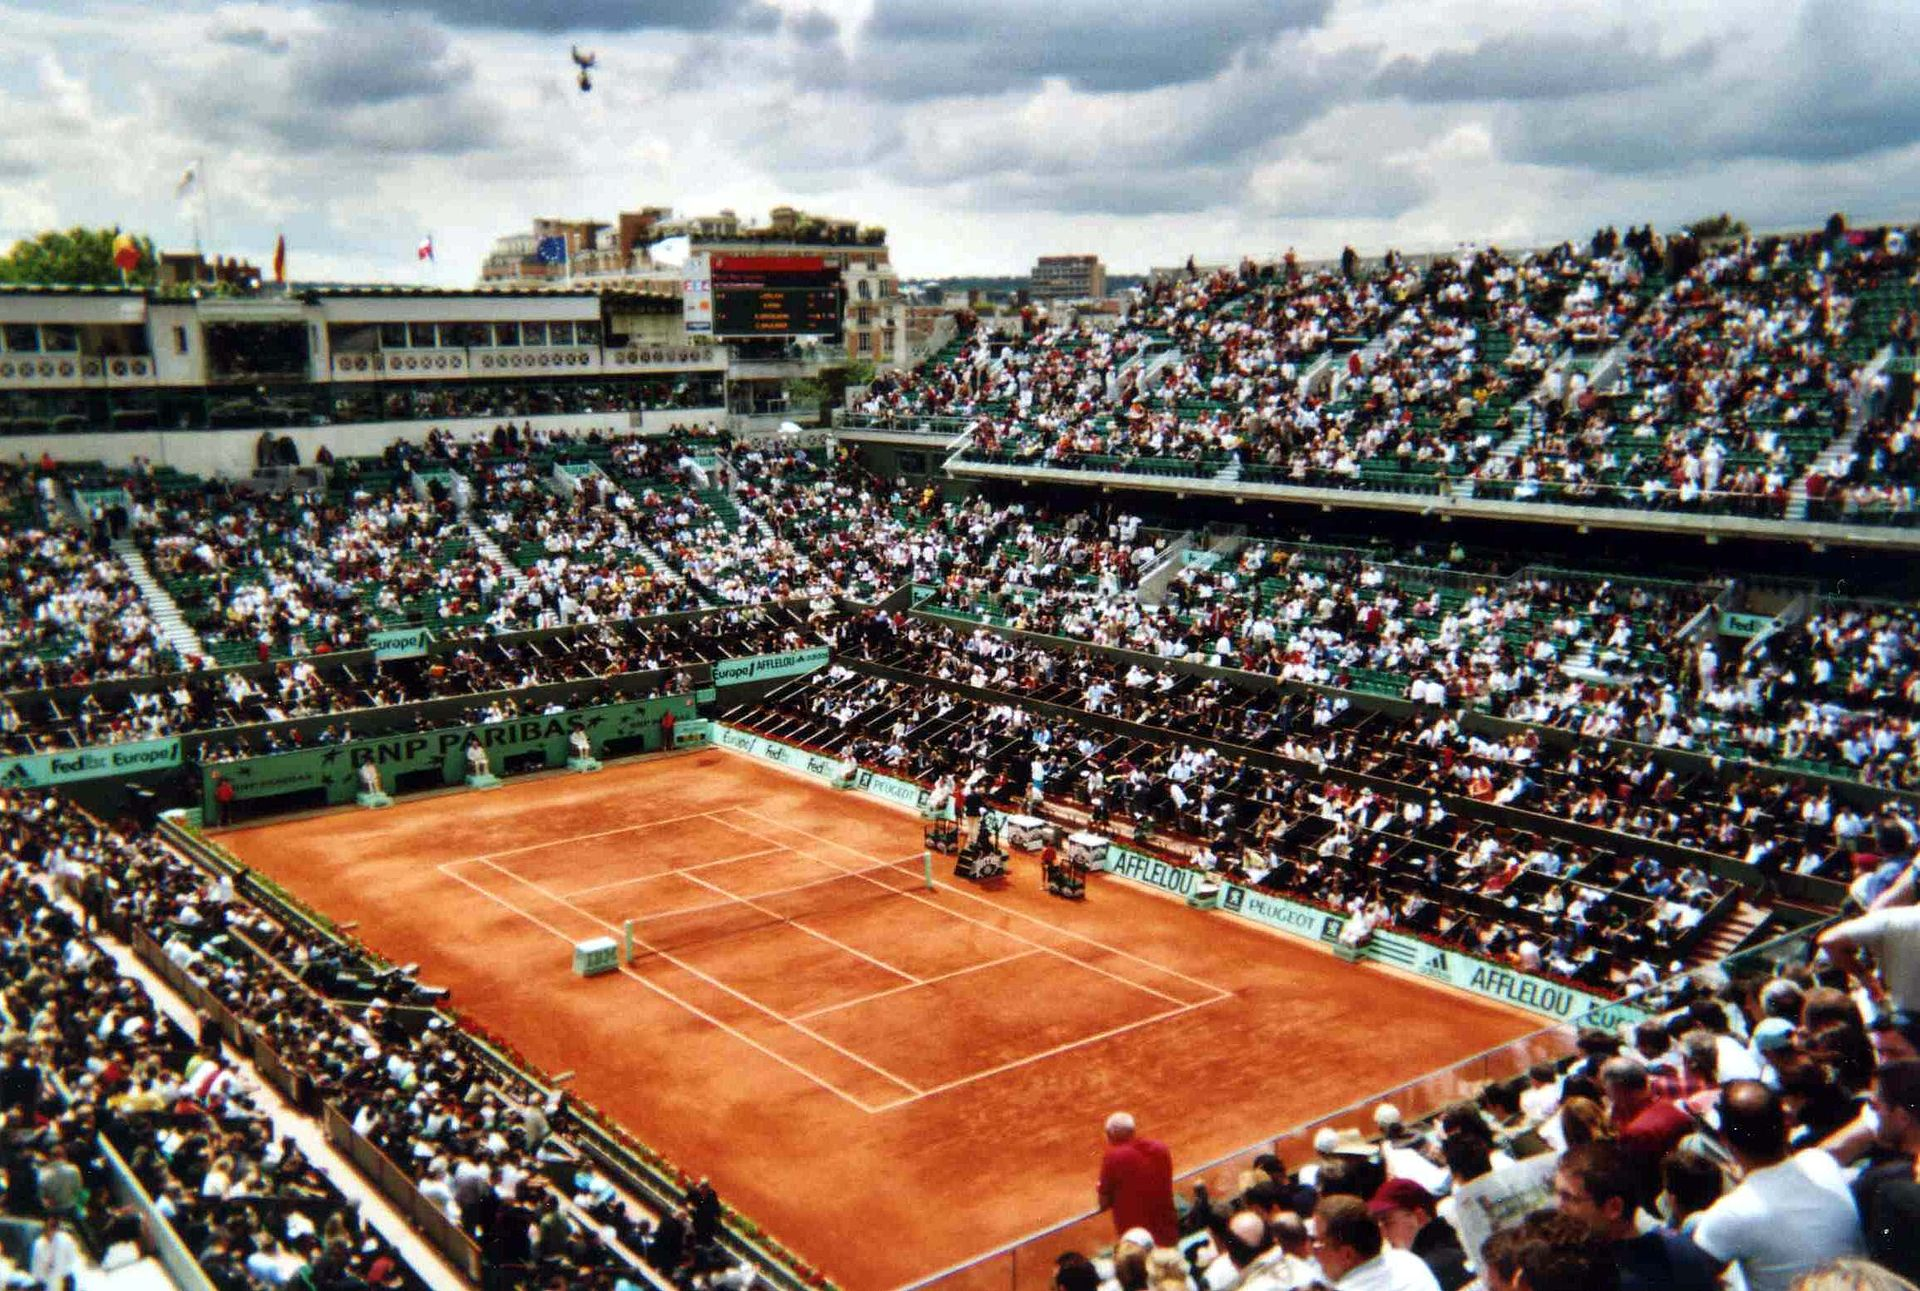 French Open Surface